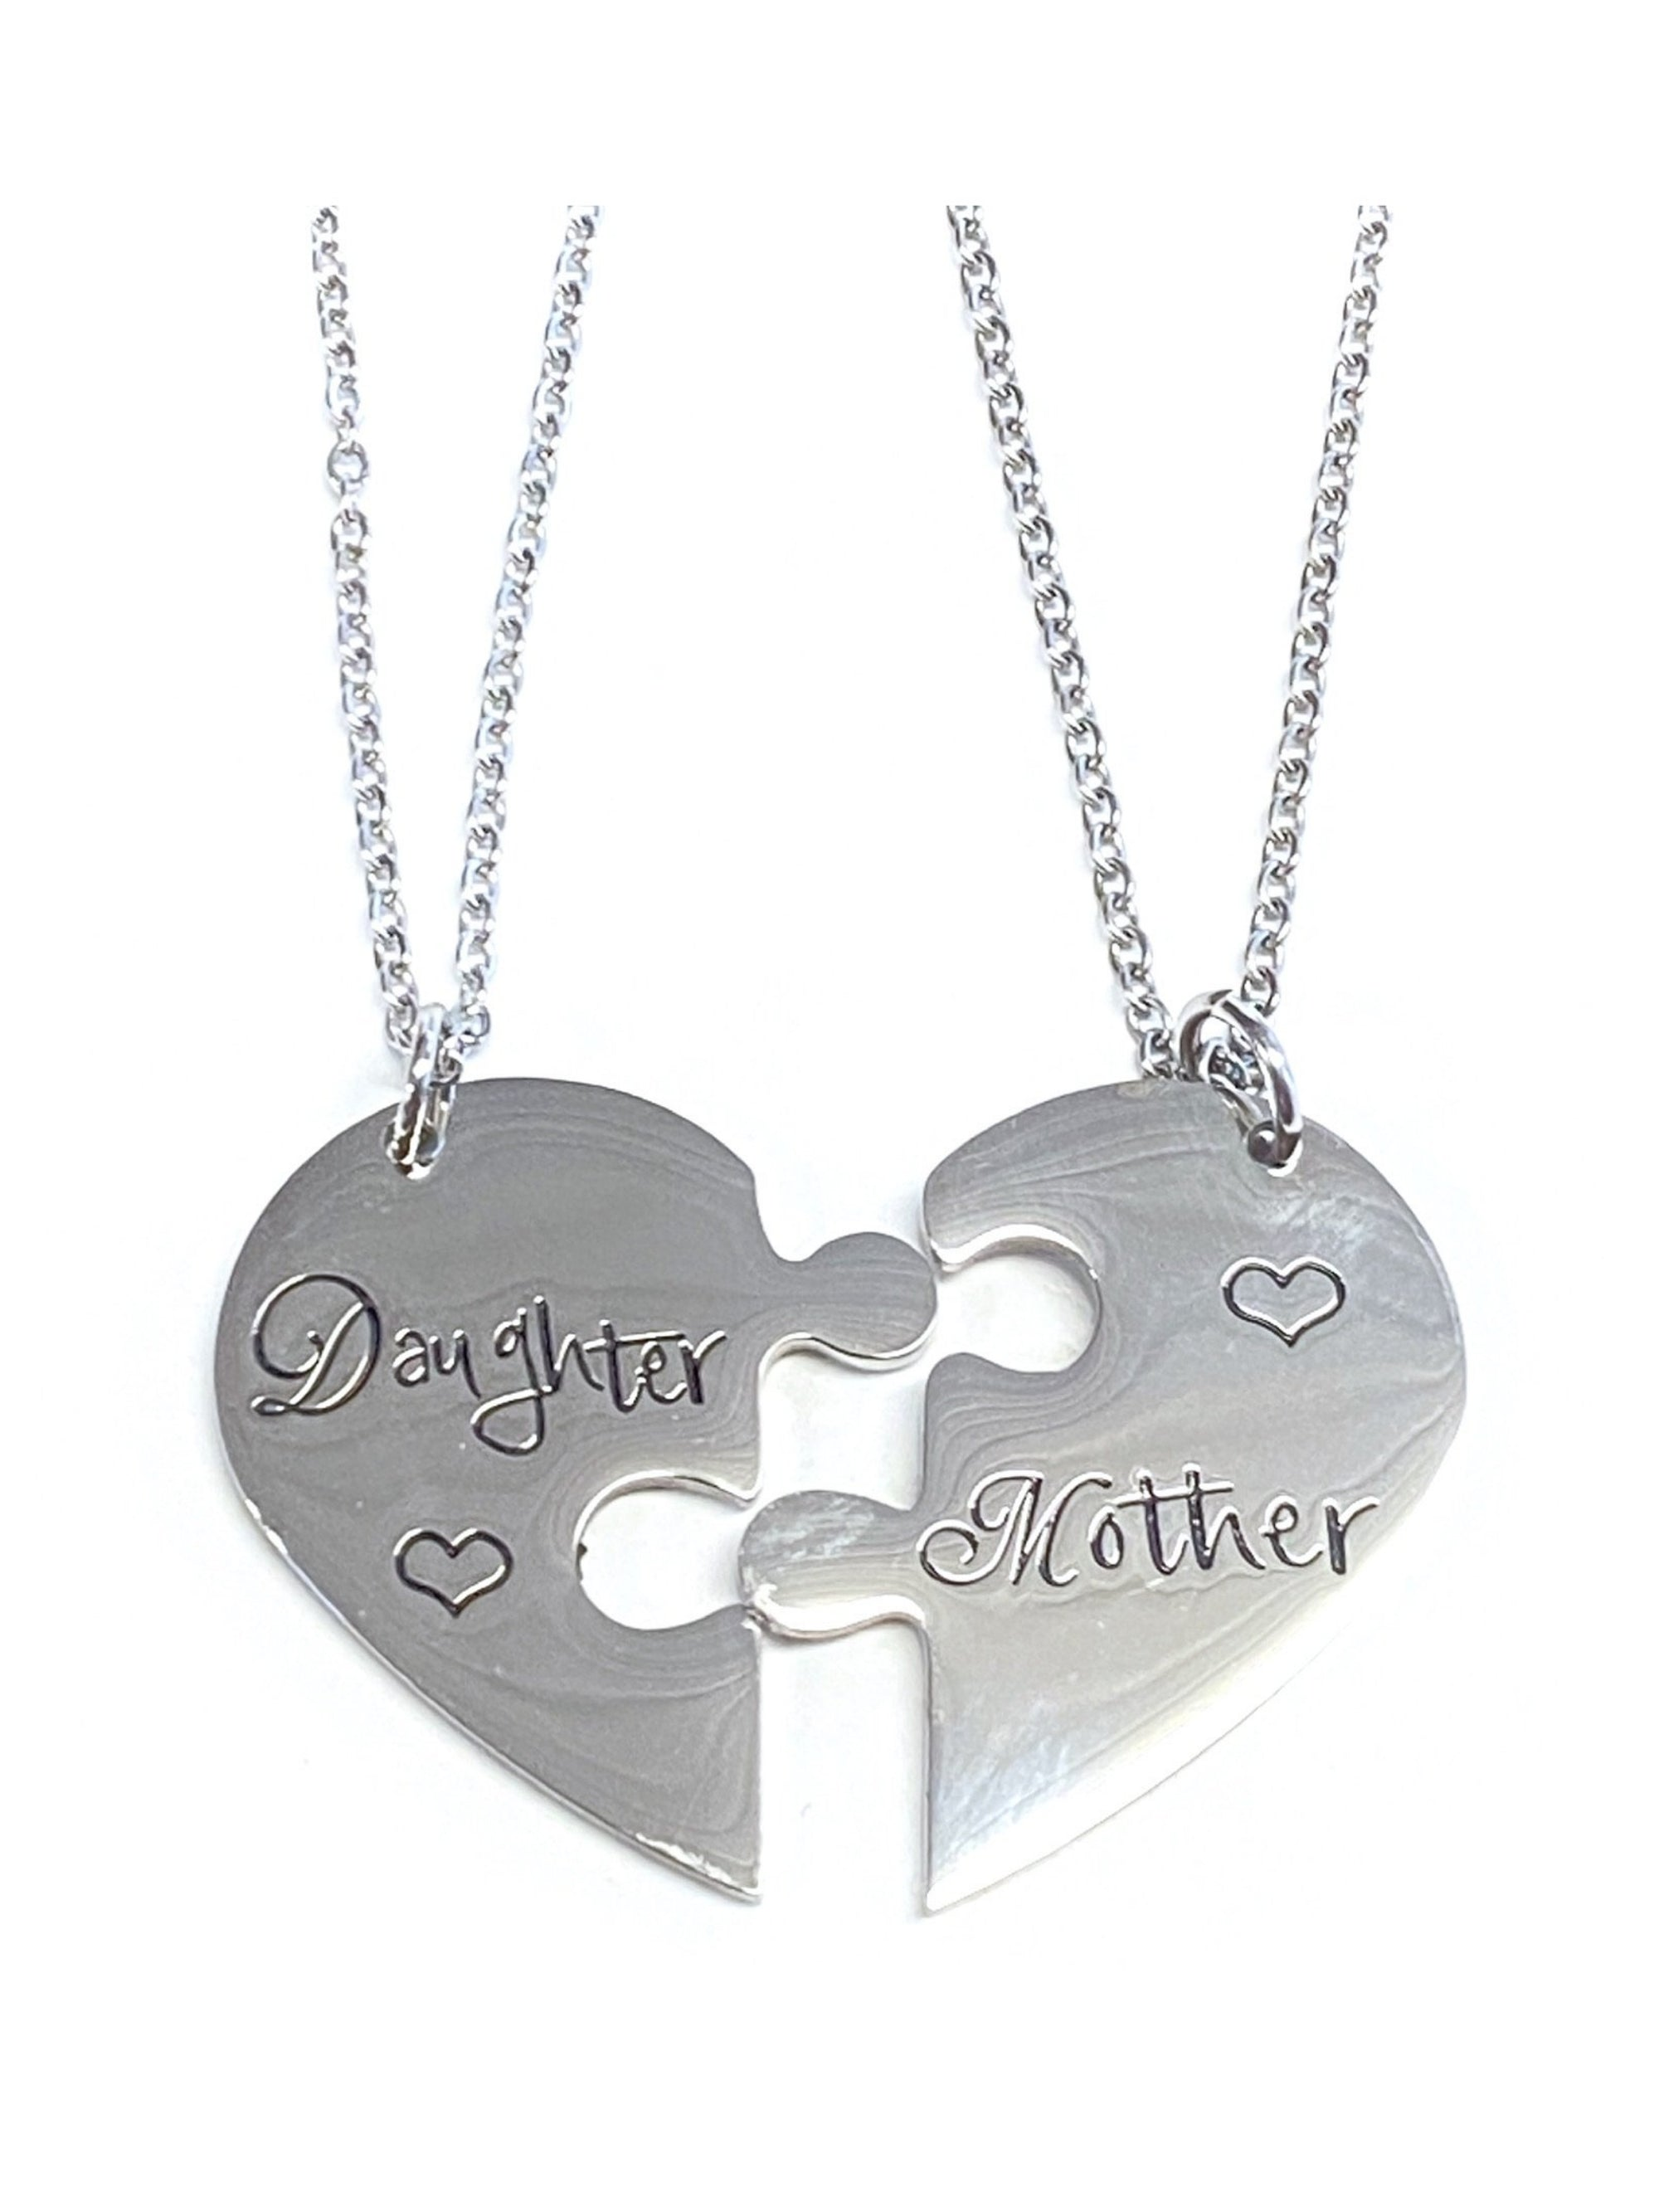 Mother & Daughter Heart Necklaces